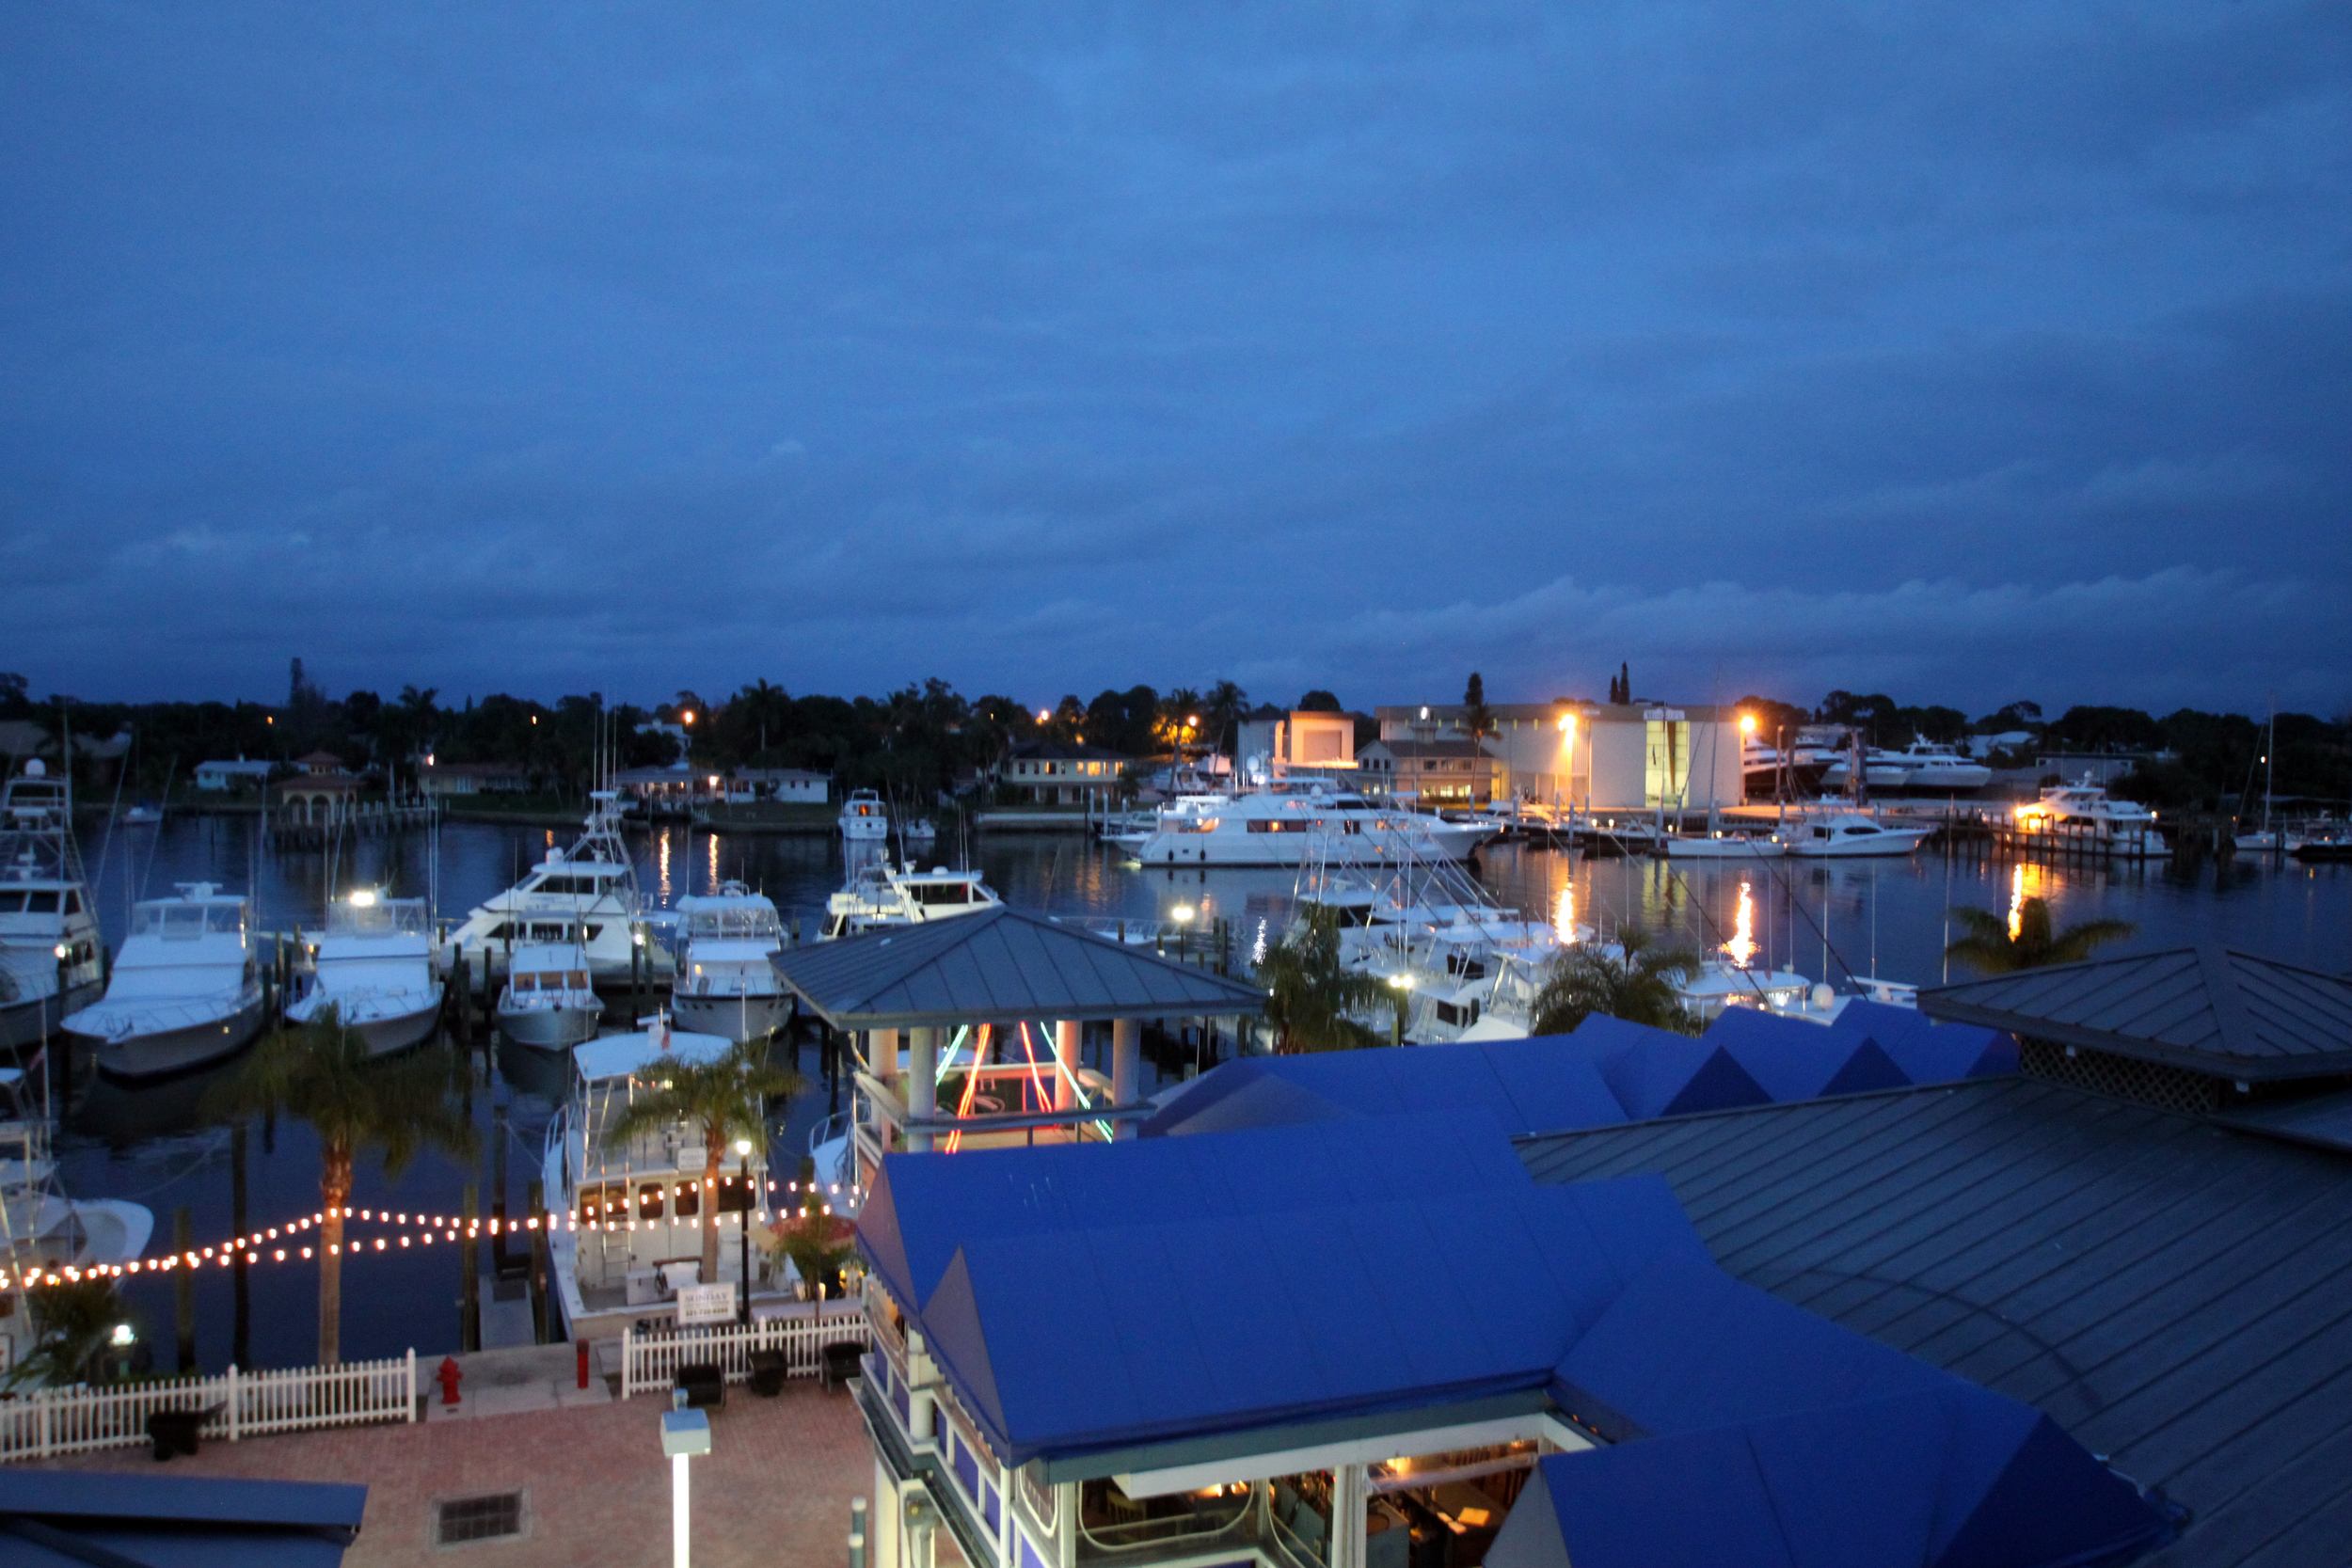 Evening view on harbor from Pirates Cove Resort balcony ©Joanne DiBona